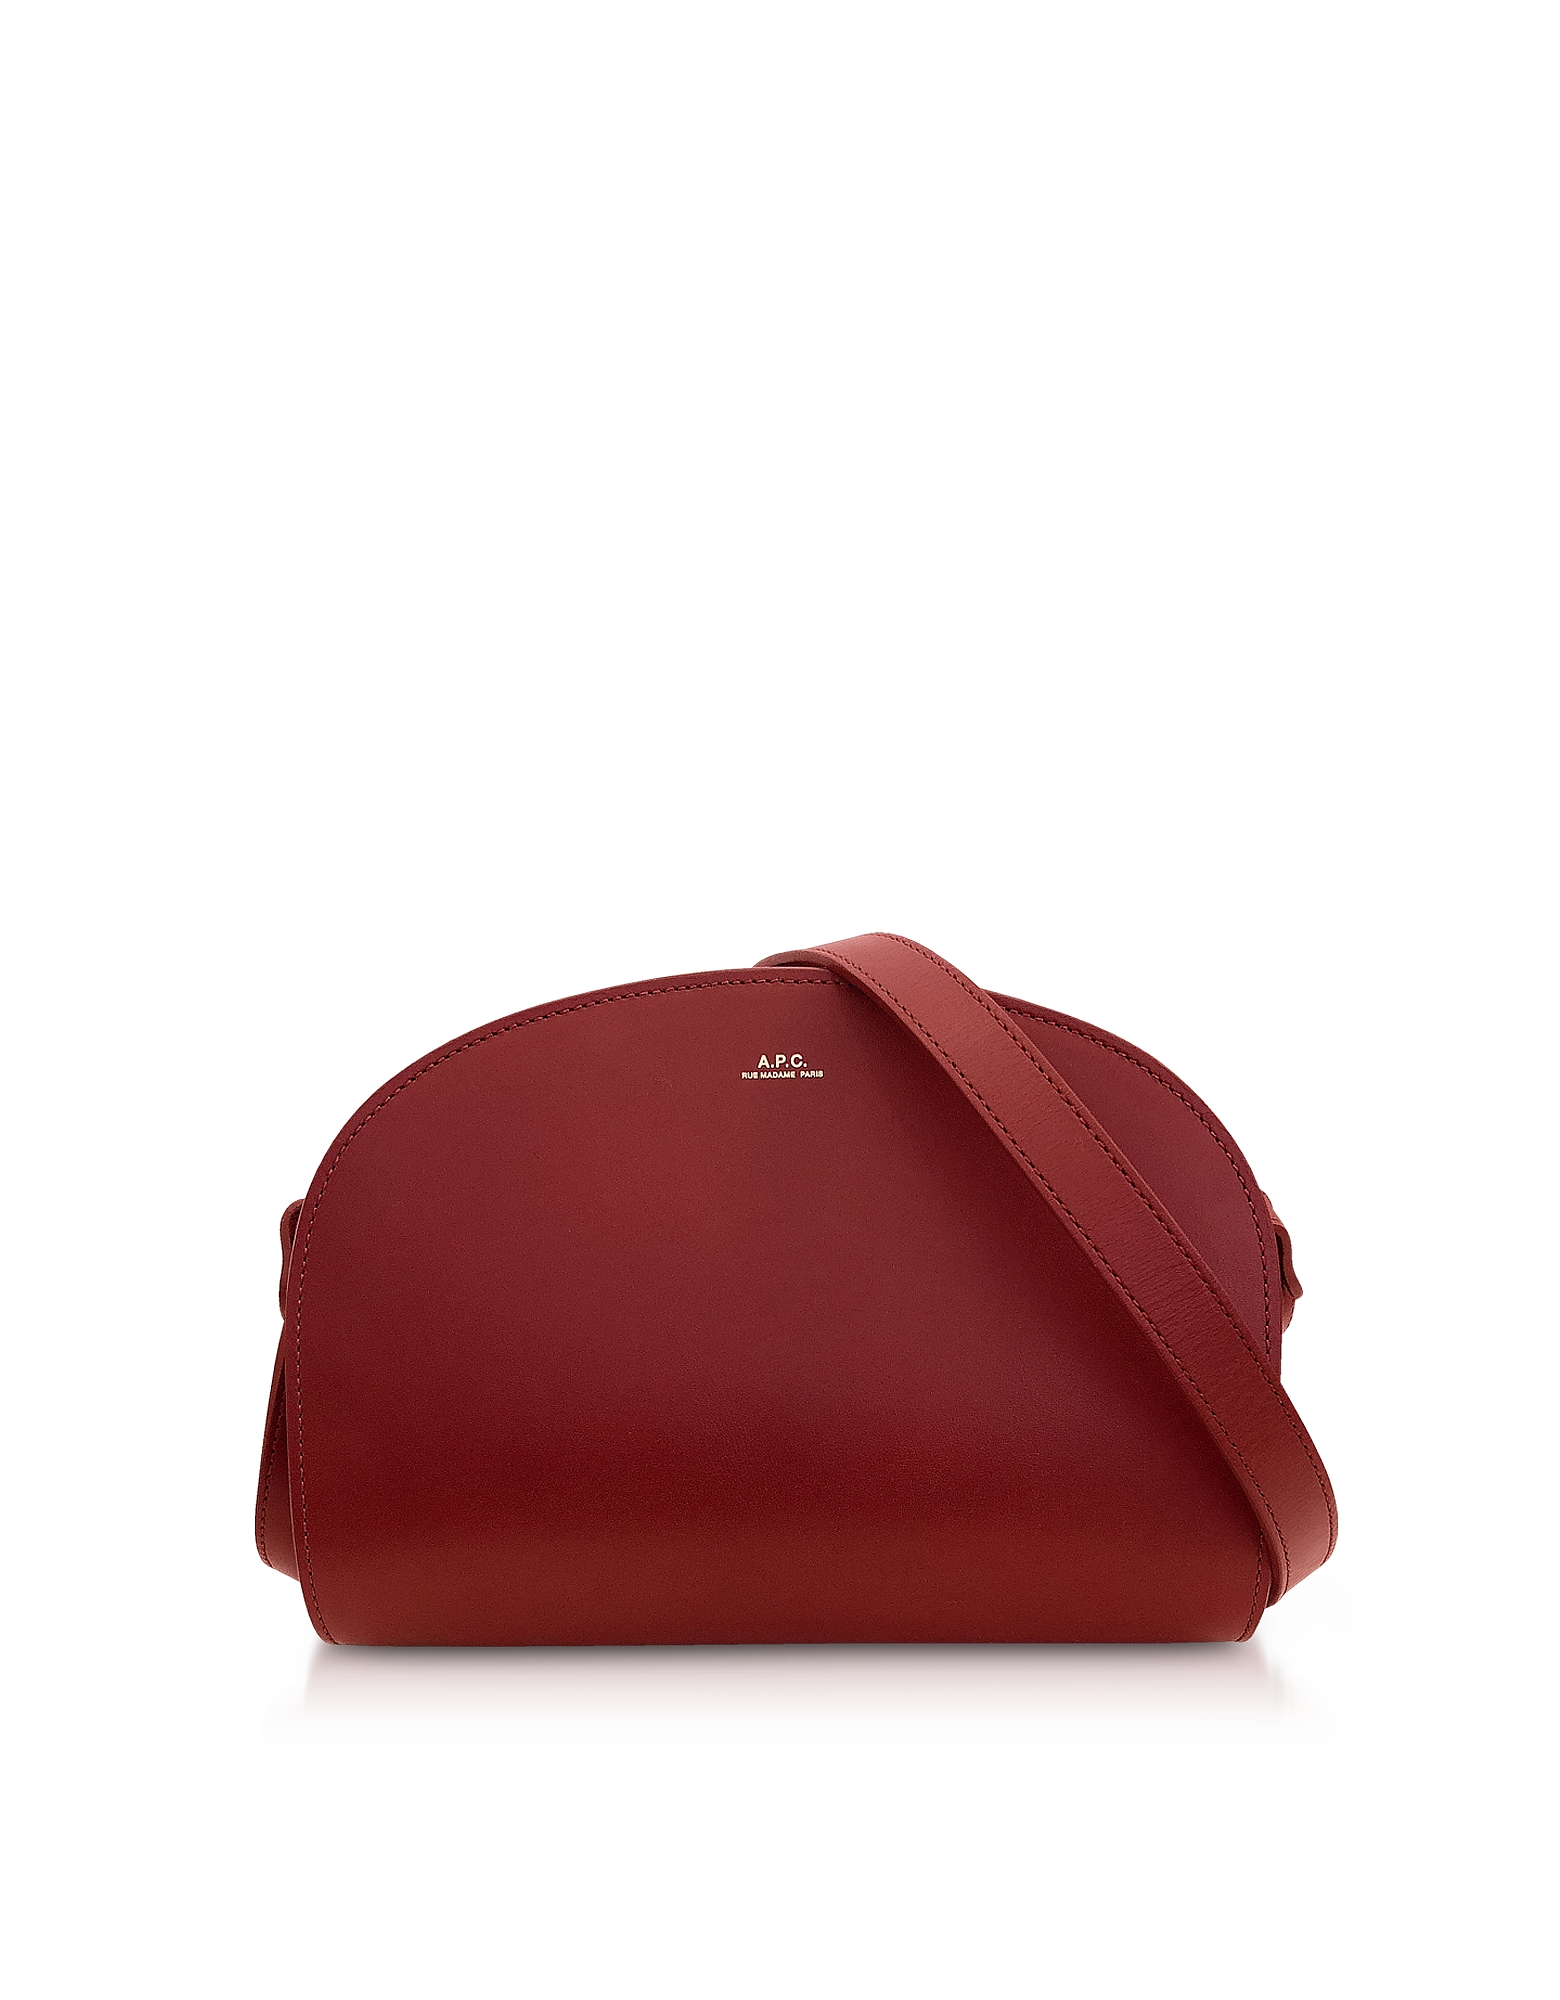 Demi Lune Borsa Crossbody in Pelle Bordeaux